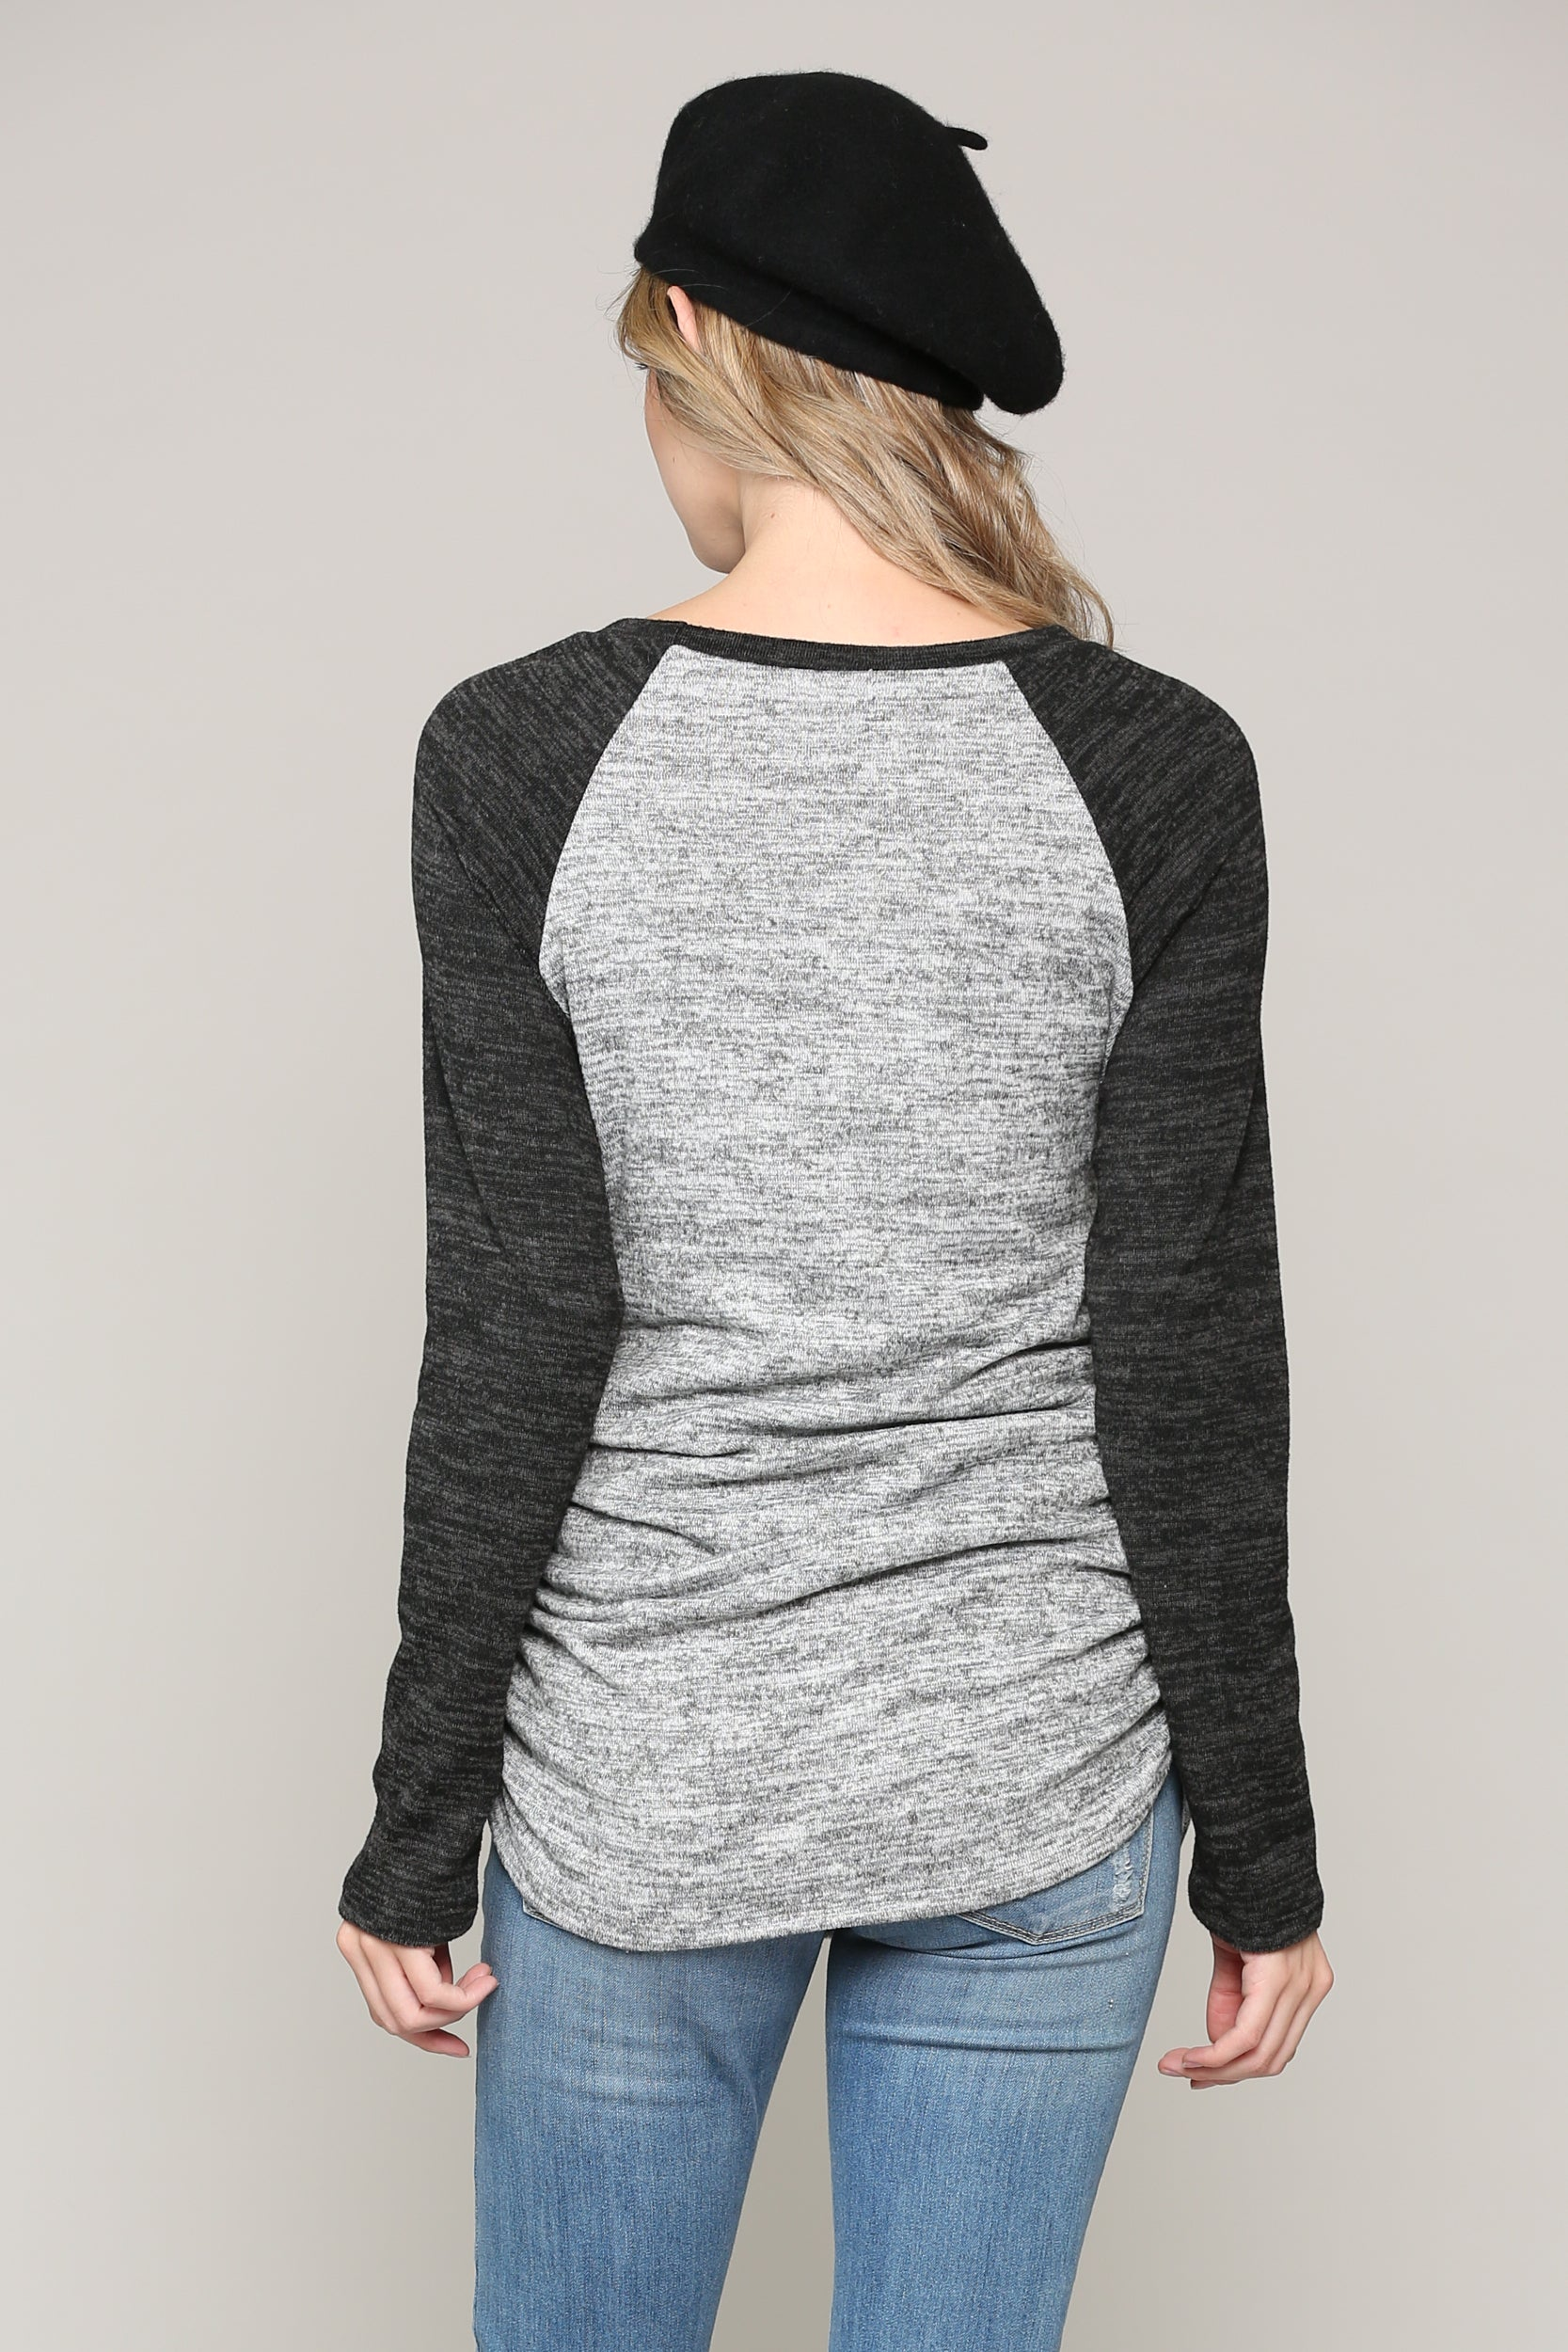 Sweater Maternity Knit Top